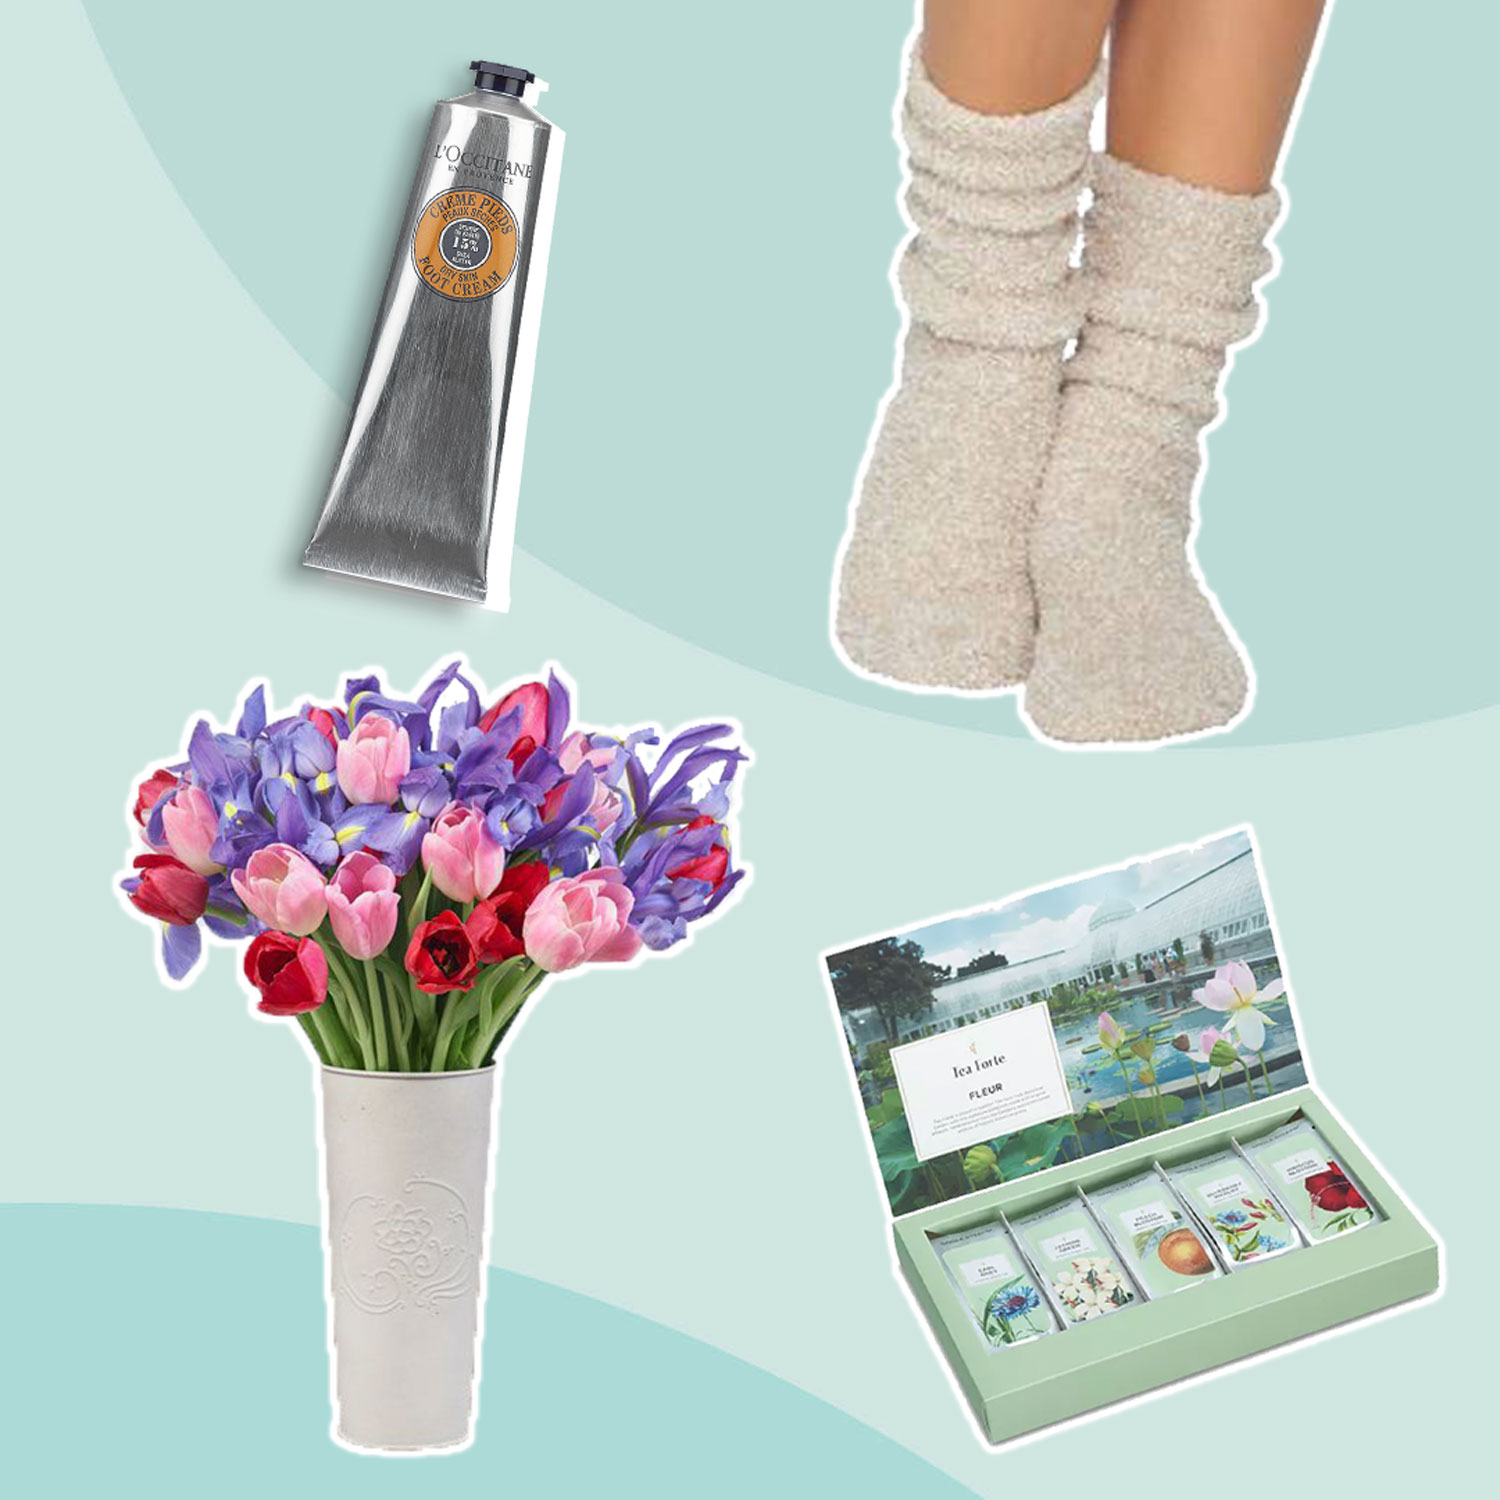 self-care mother's day gift guide